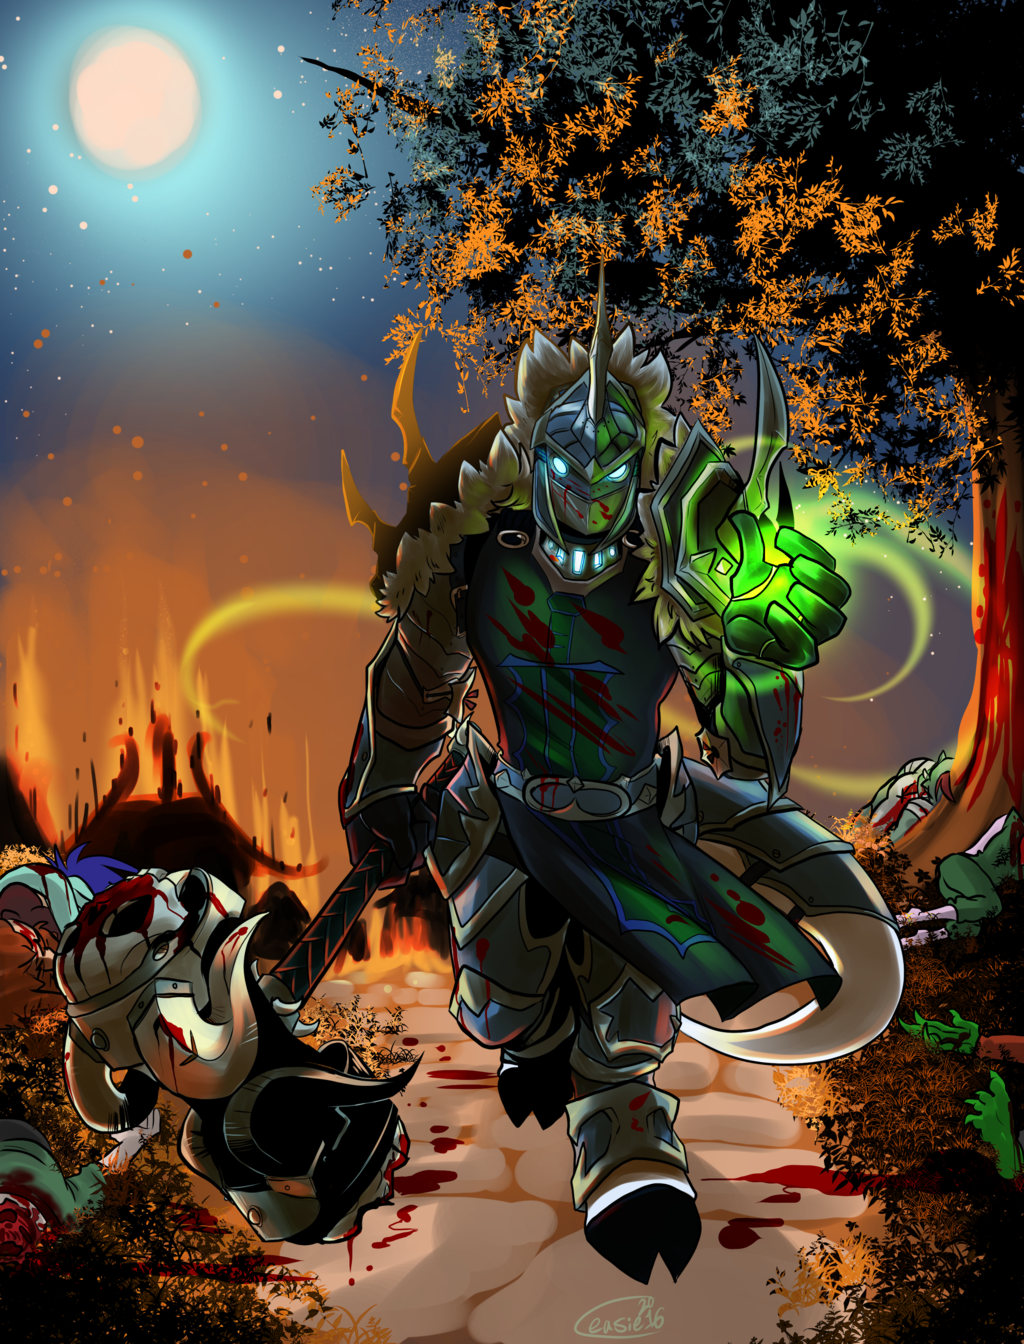 Most recent image: WoW commission - Areniaagn